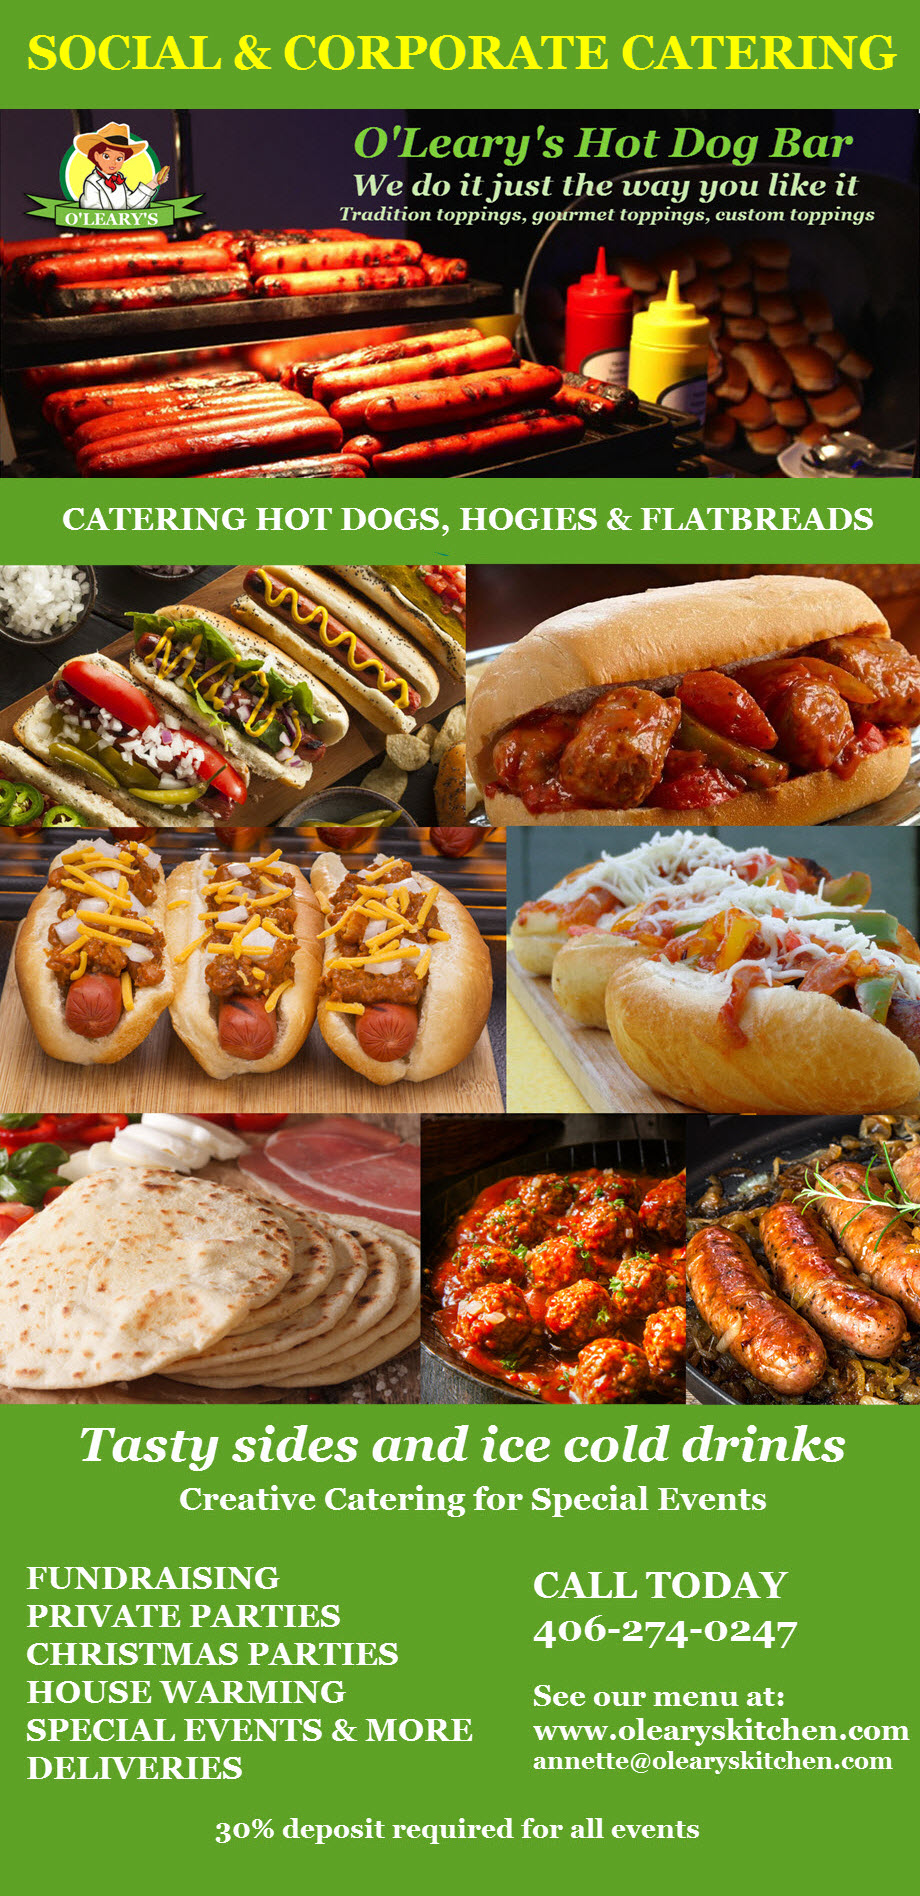 Catering Brochure O'Leary's Hot Dog Bar